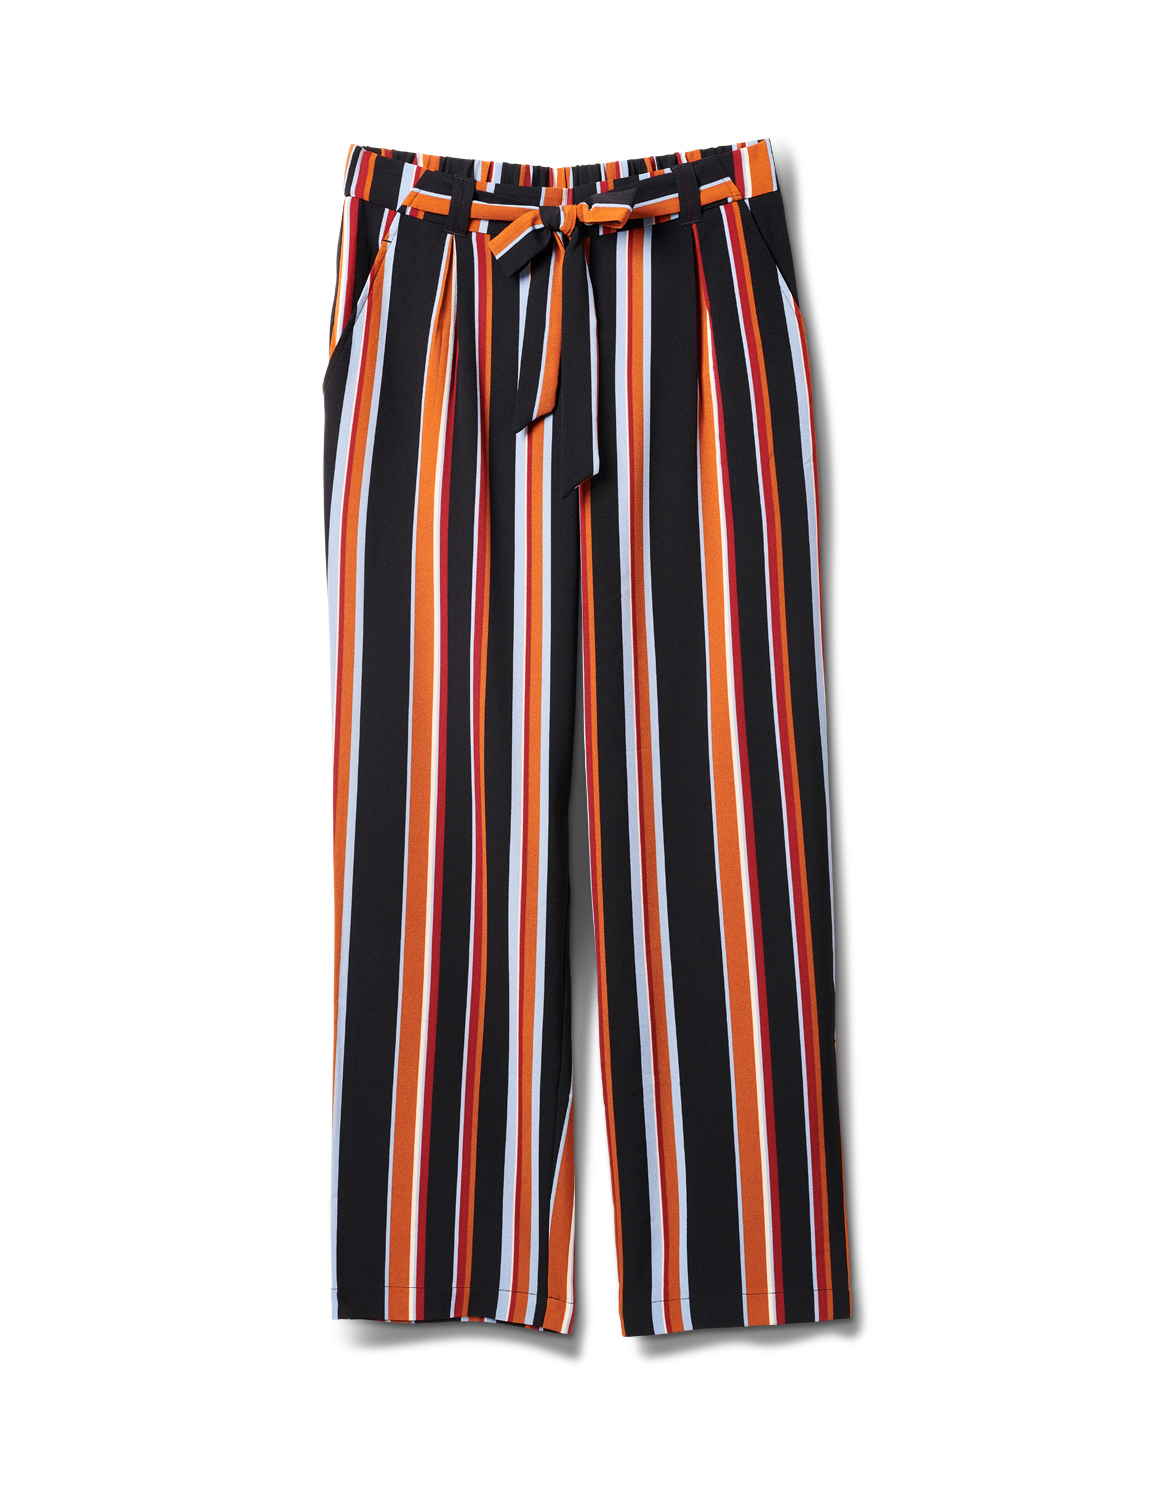 Striped Elastic Waist Soft Pant with Tie Belt - Multi - Front